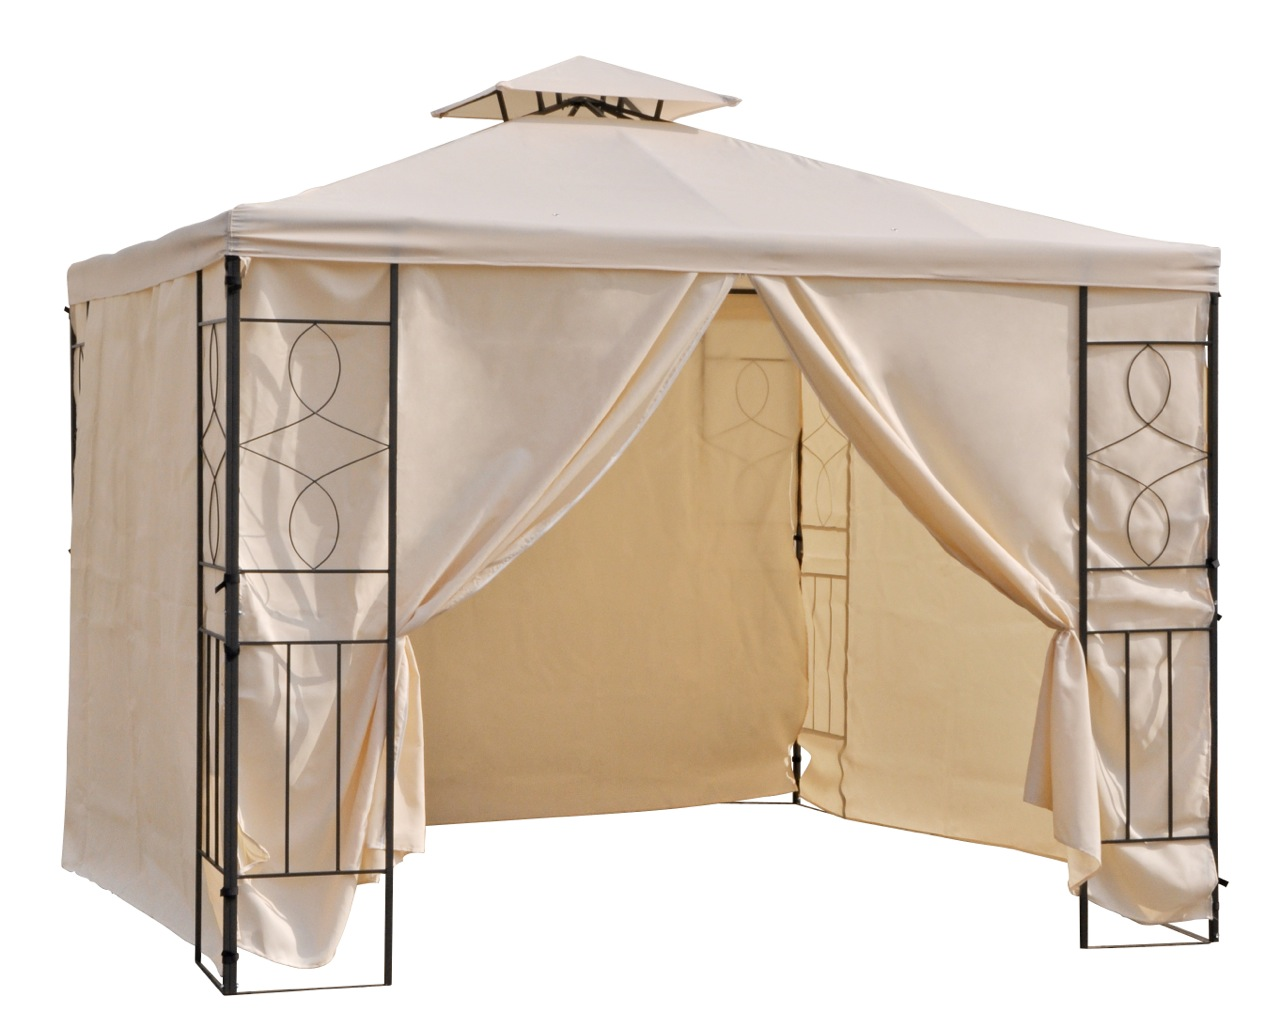 4 seitenteile seiten teile seitenw nde f r 3x3 metall pavillion pavillon beige ebay. Black Bedroom Furniture Sets. Home Design Ideas